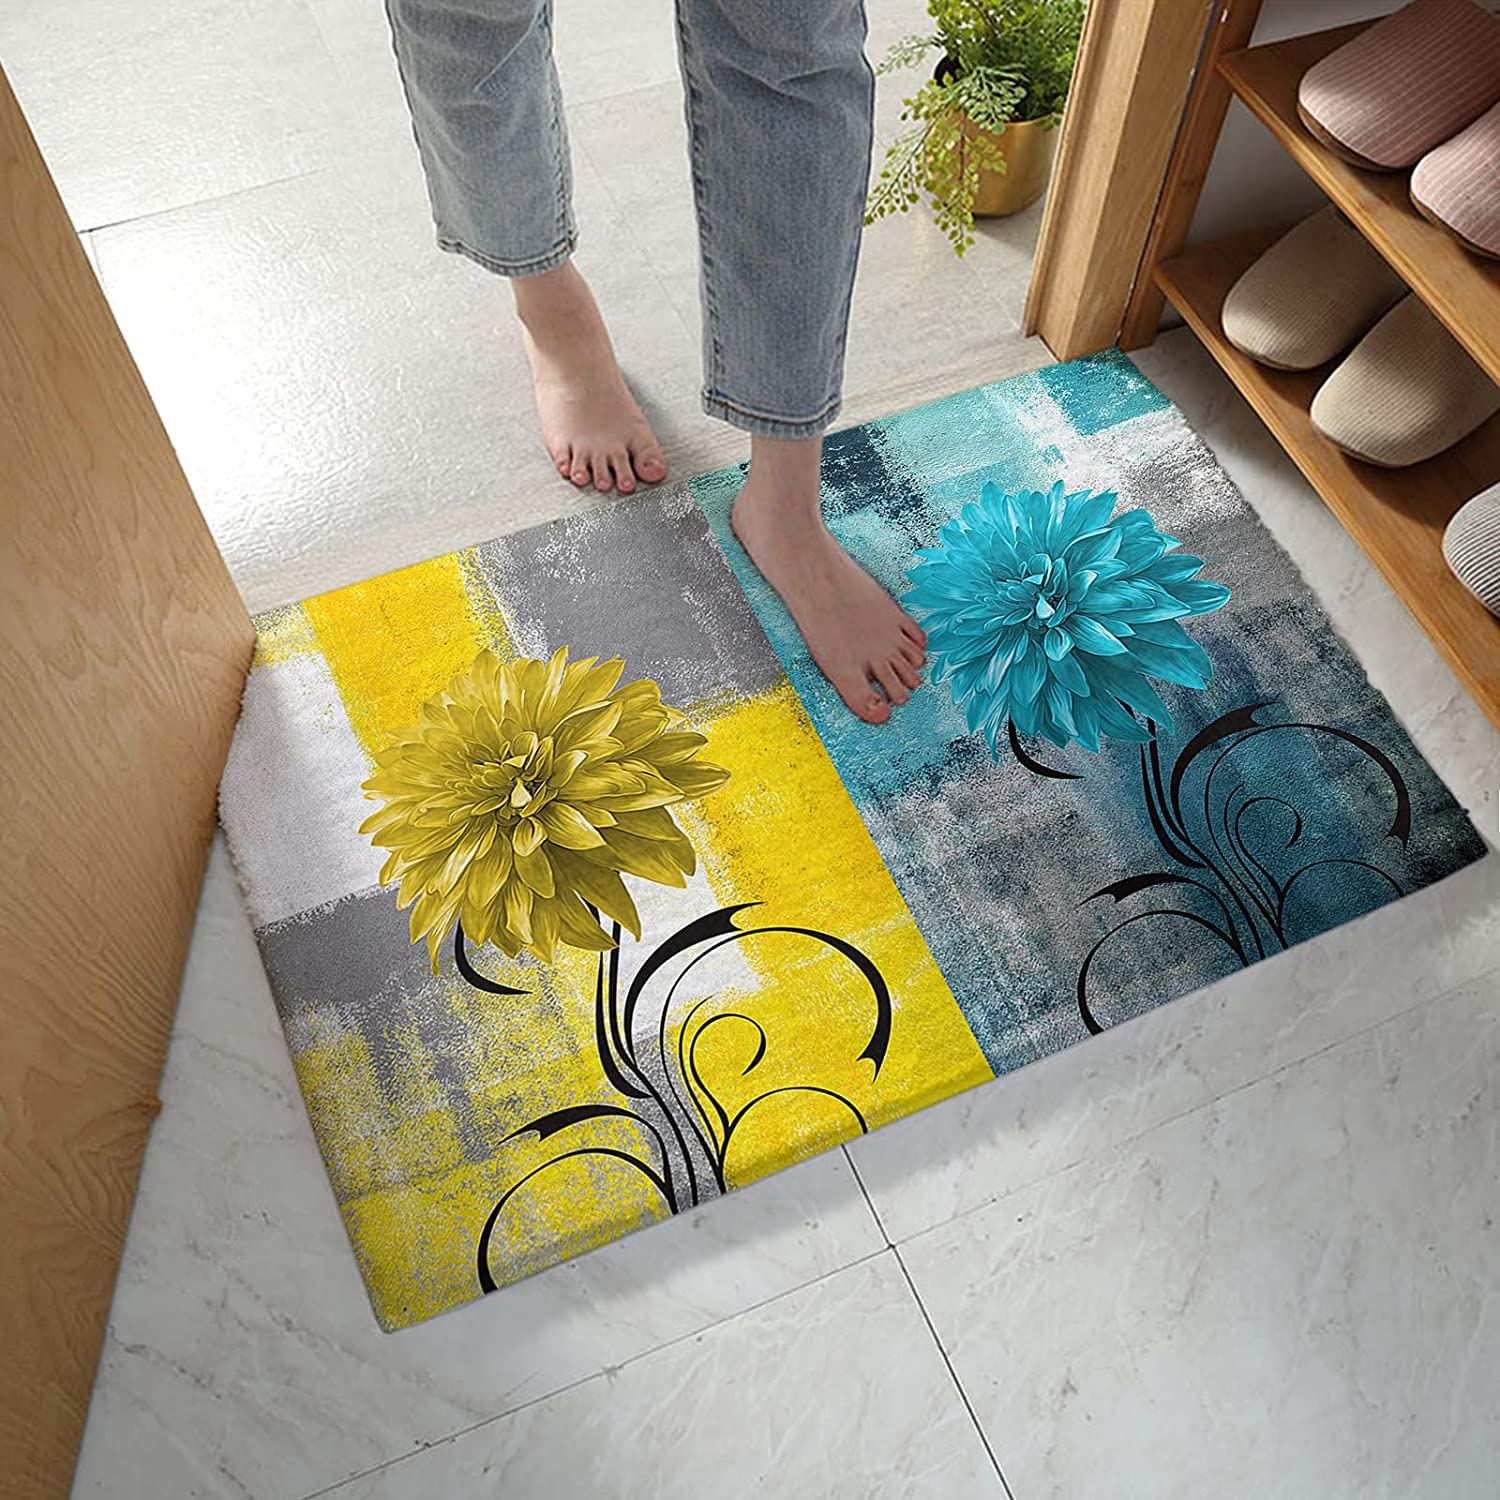 LBHAUSE Limited price sale Bathroom Rugs Soft Los Angeles Mall Plush Bath Colorful Mat Dah Blooming